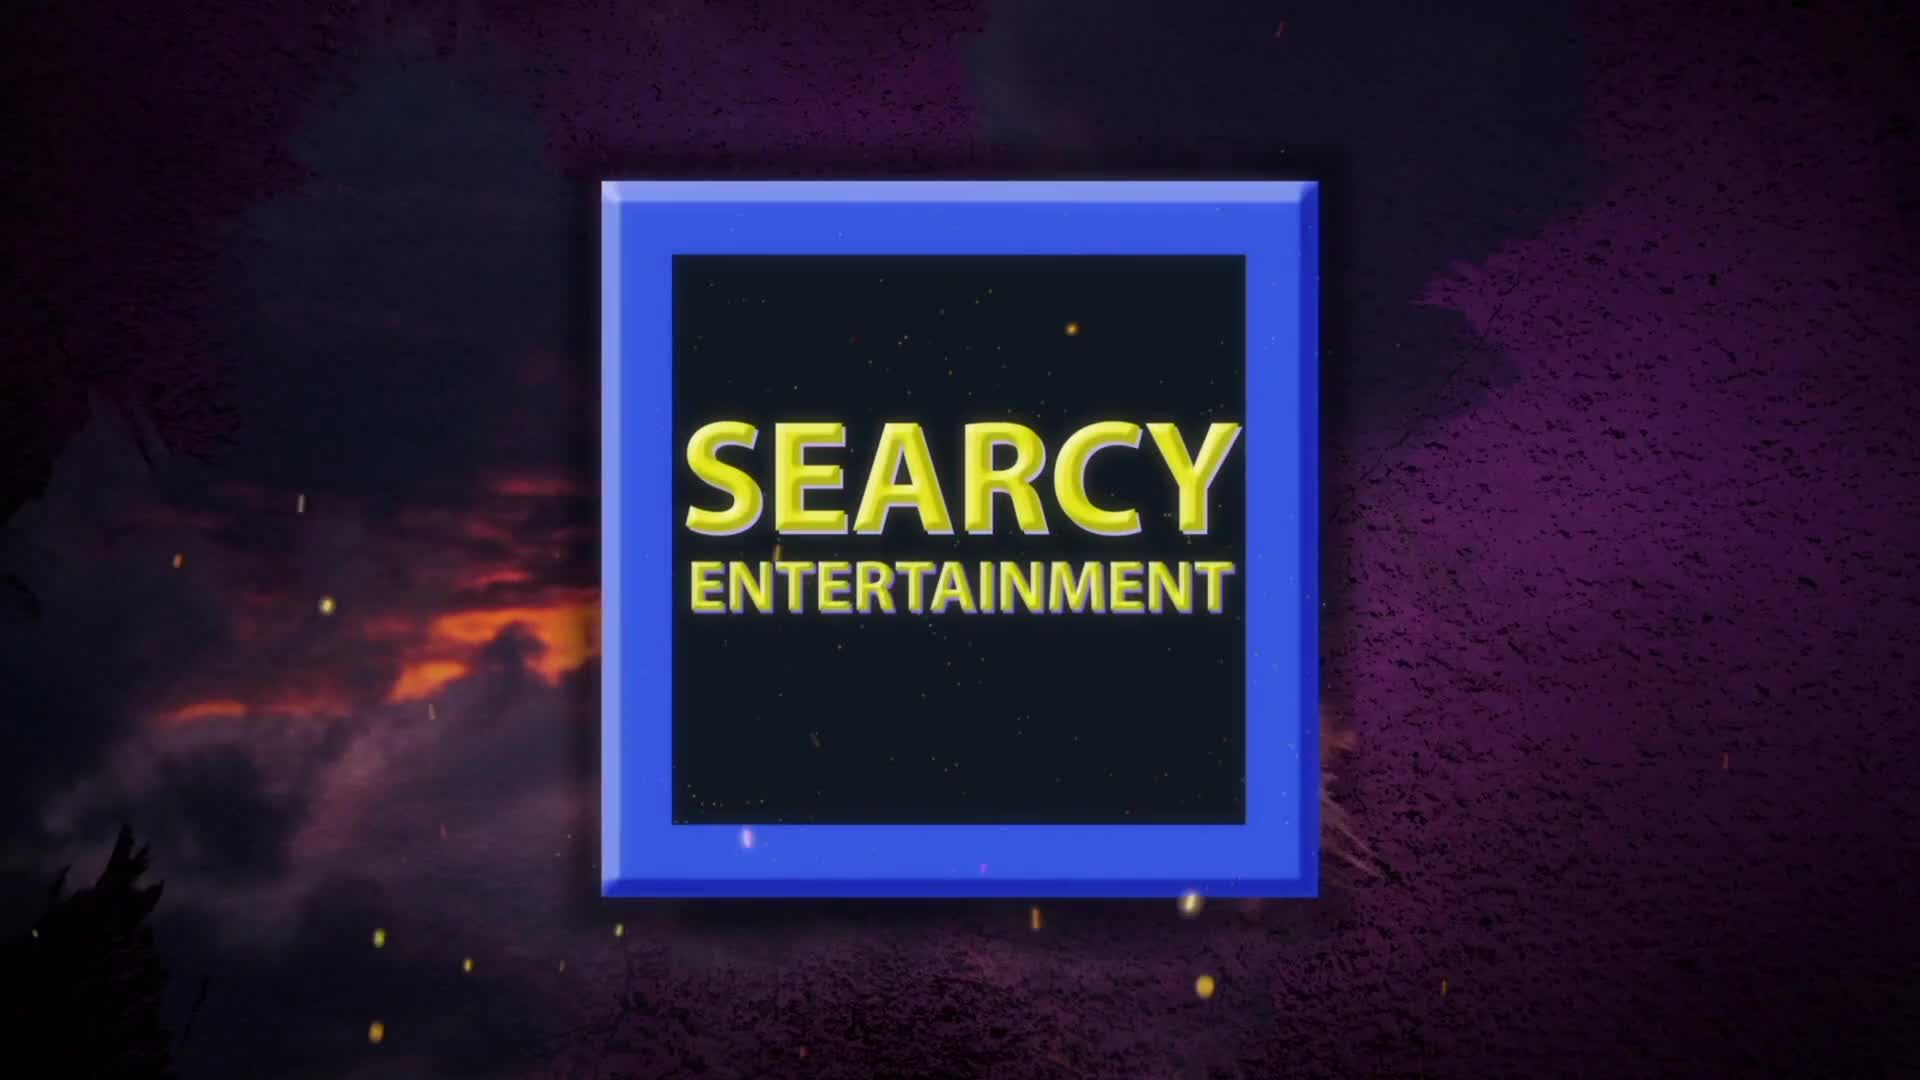 SEARCY ENTERTAINMENT - EPISODE ONE - DR. SHAMIL SMARTLIVING - COVID-19